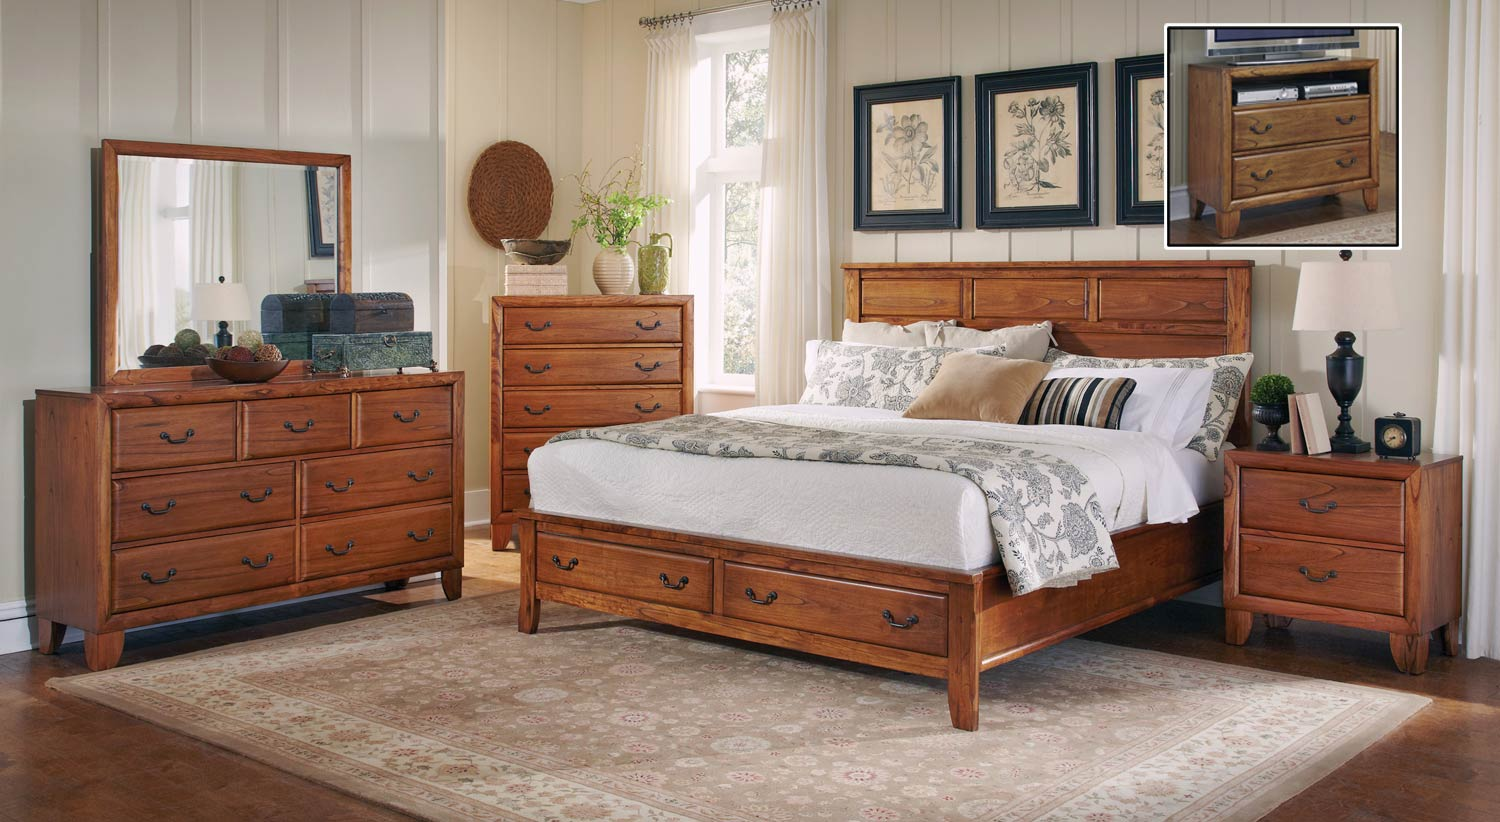 Coaster Willow Creek Bedroom Set Oak Bed Set at Homelement